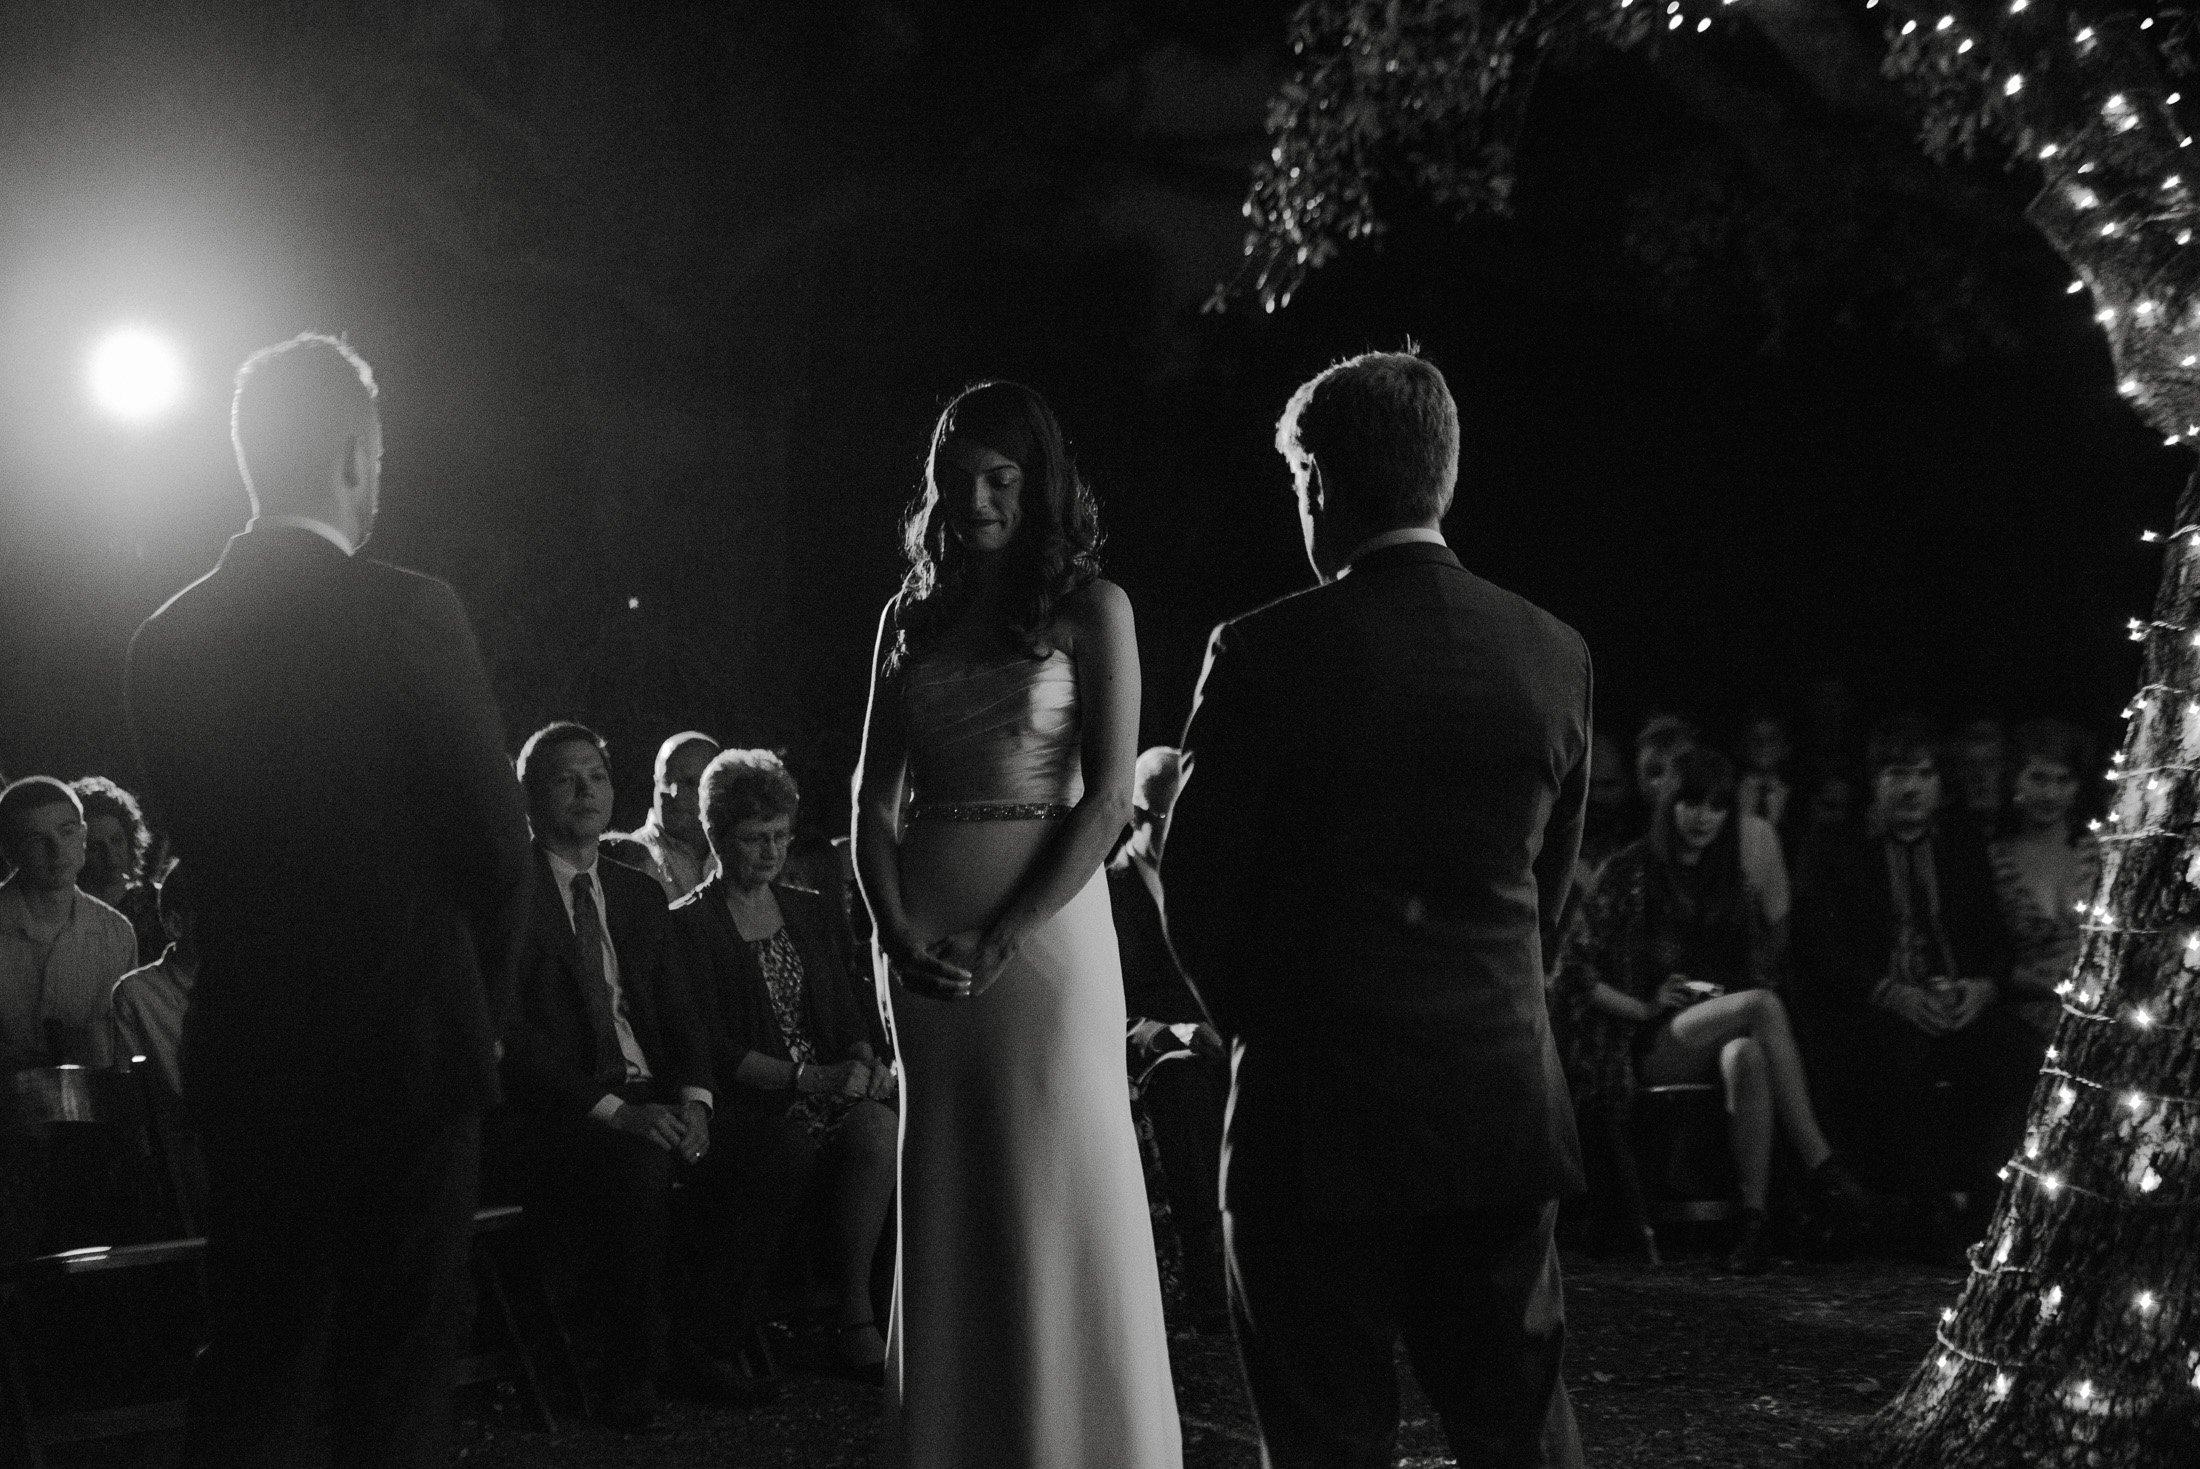 sunset wedding ceremony in black and white